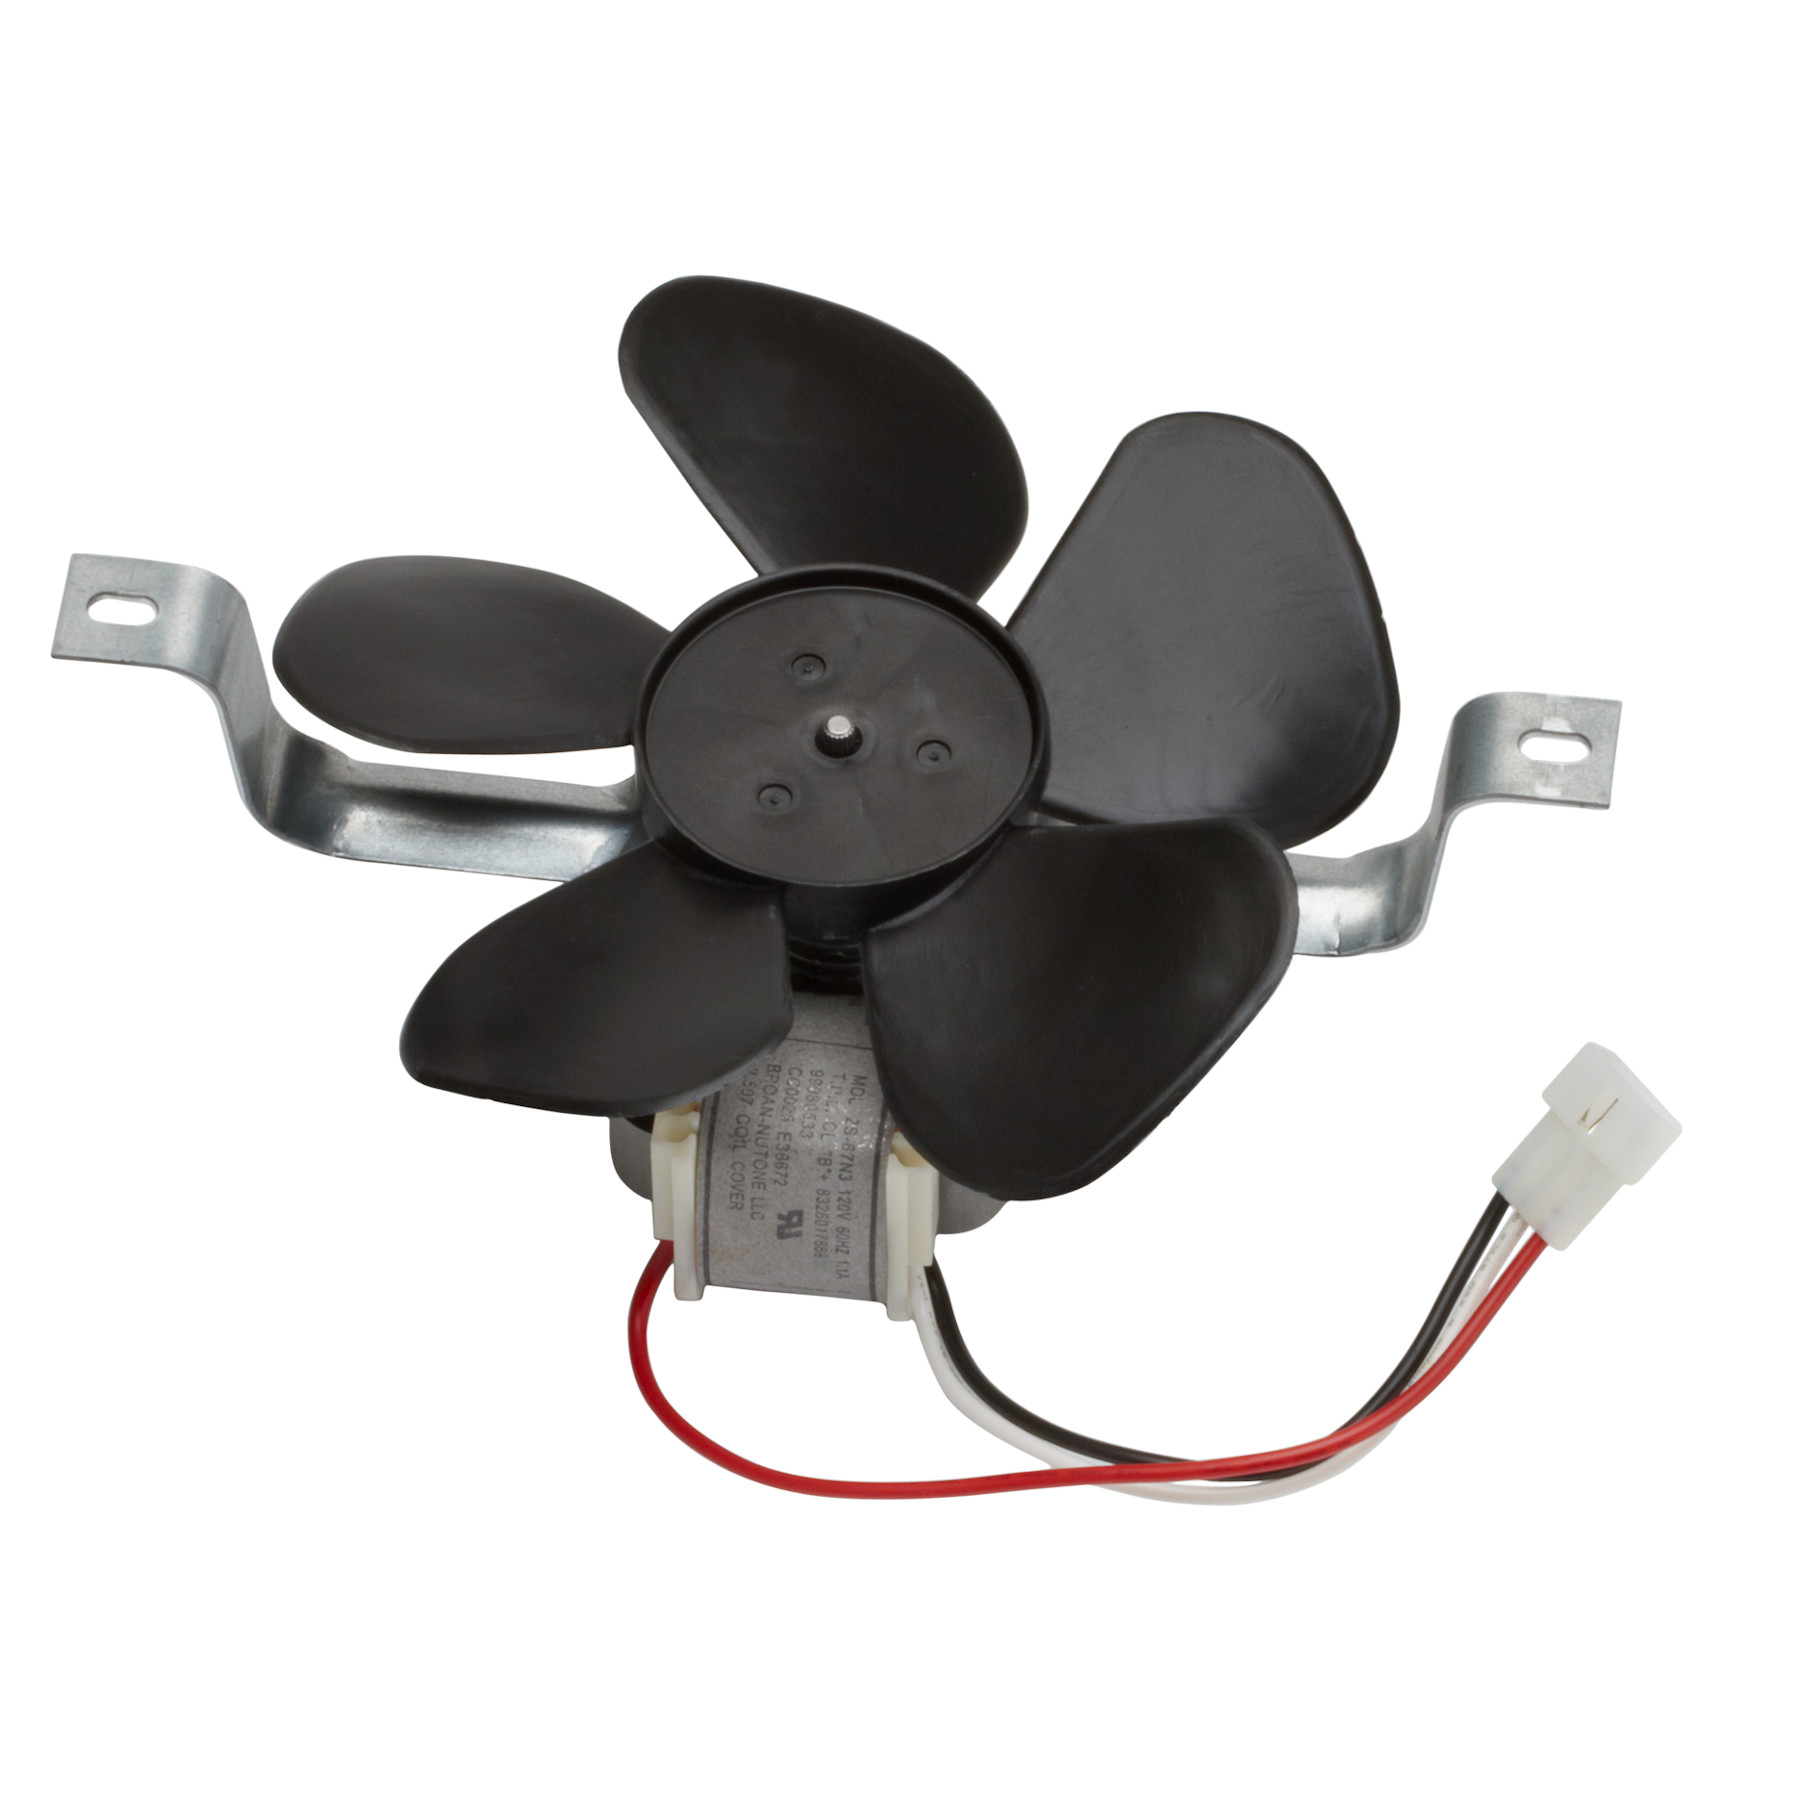 Fan Assembly for Broan® 40000 and 42000 Series Range Hoods